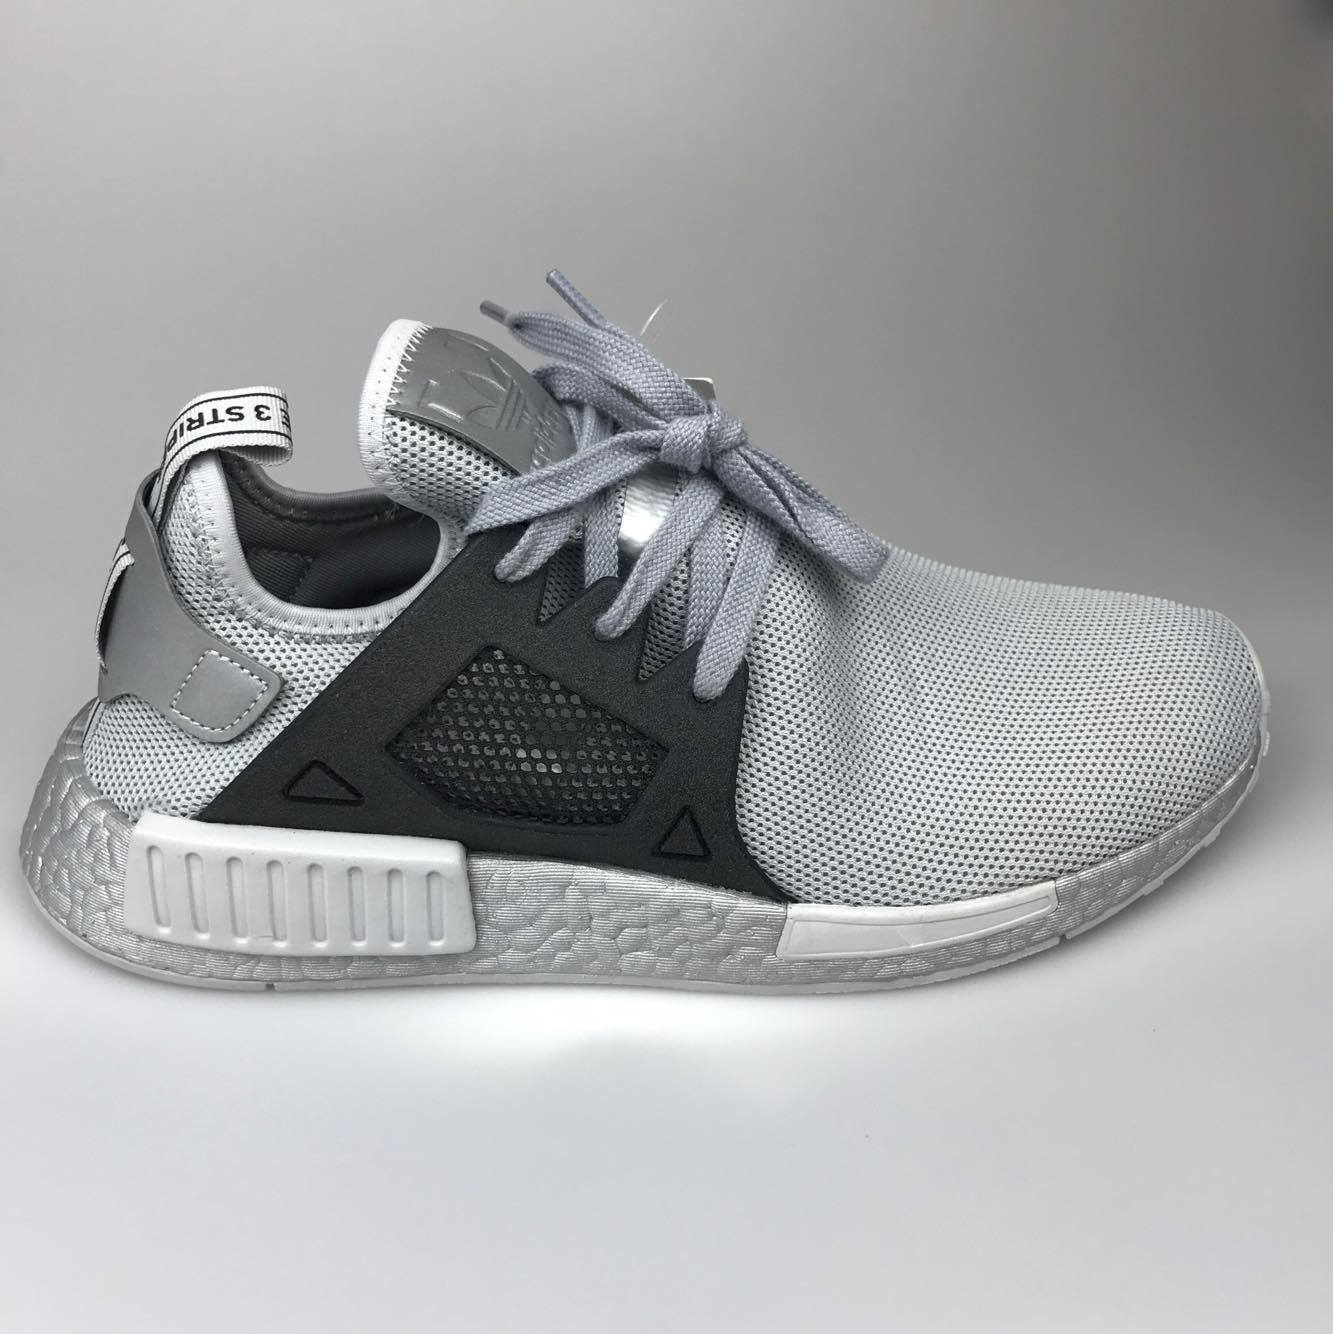 Adidas NMD XR1 Army Duck Camo Green Black flux ultra boost White